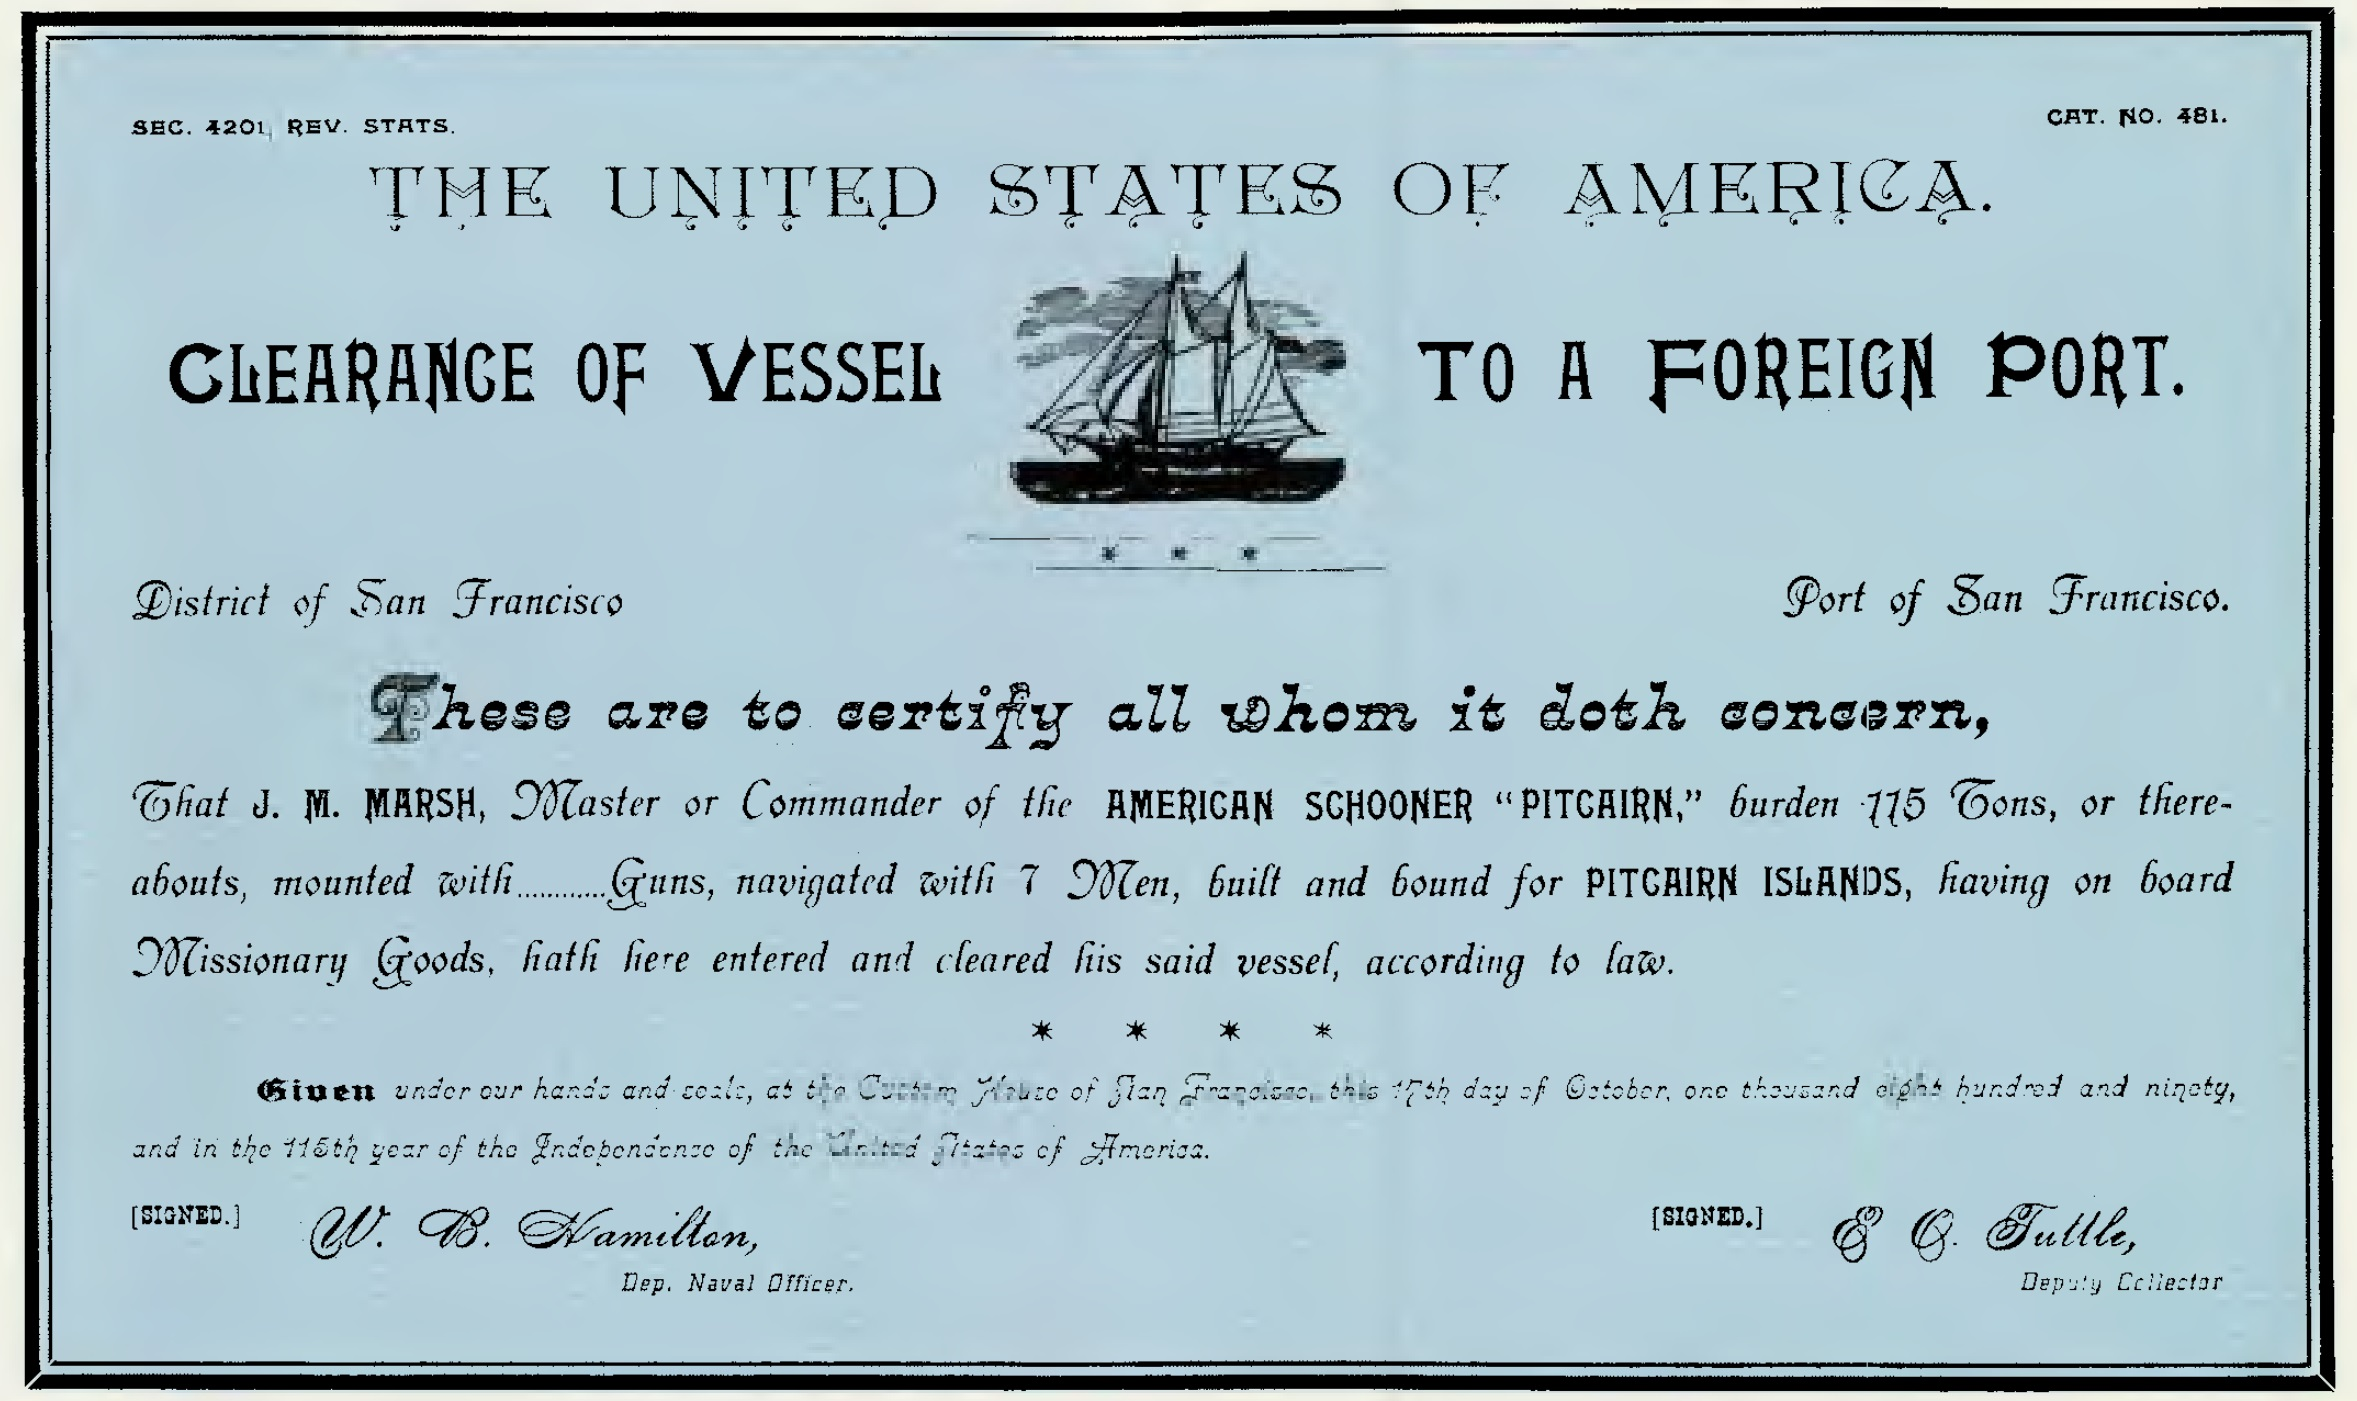 Sailing clearance papers for the schooner Pitcairn made by the Port of San Francisco on October 17, 1890.